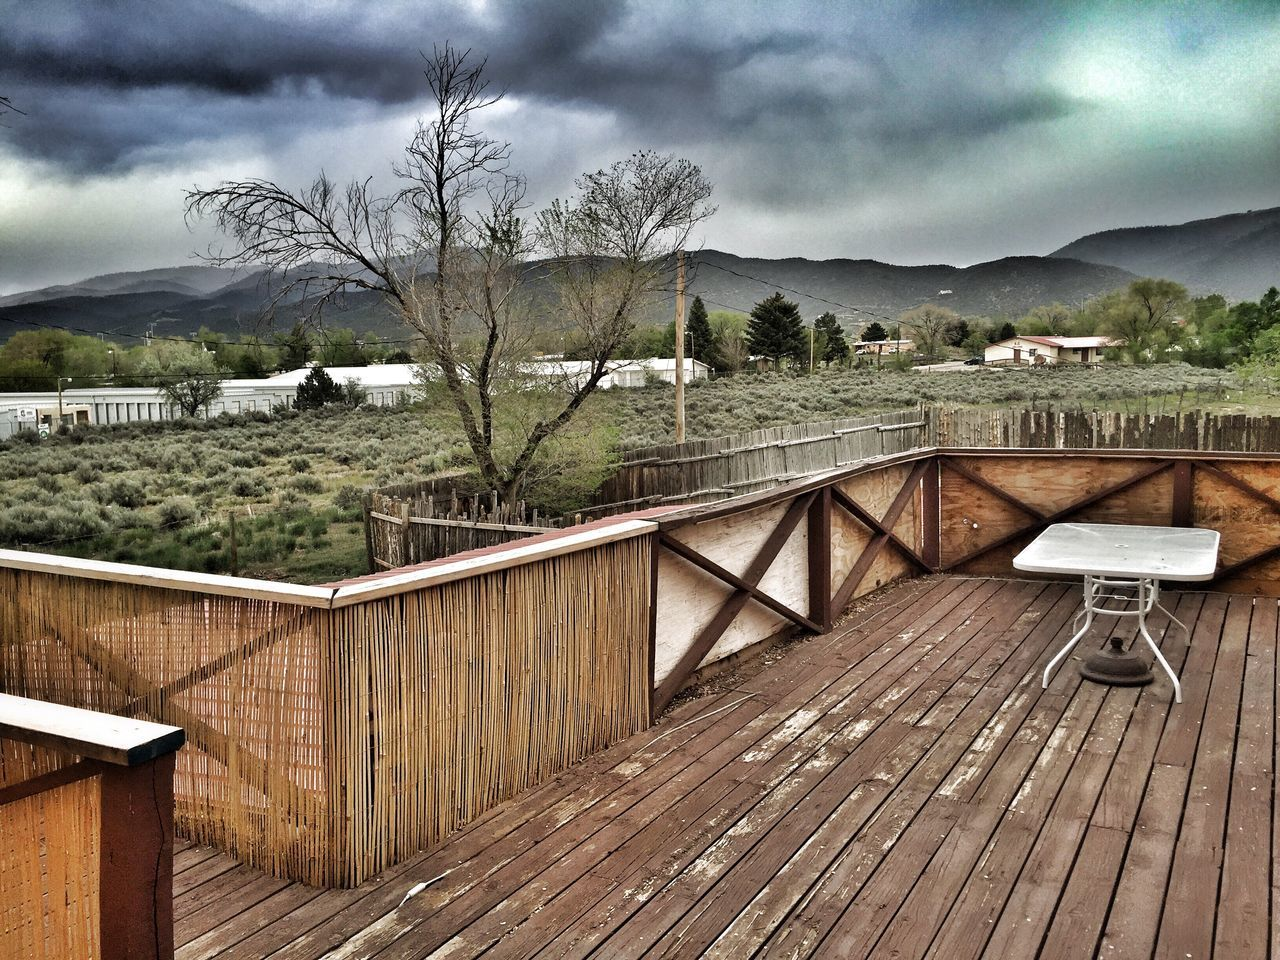 Rustic View Northern New Mexico Desert Beauty Mountains And Sky New Mexico, USA High Desert Back Yard Deck Decks Deck View Taos New Mexico Old Fence Old Fences Clouds Clouds And Sky Wood Deck Hello World Enjoying Life Taking Photos New Mexico Spring Storms Old Deck Relaxing